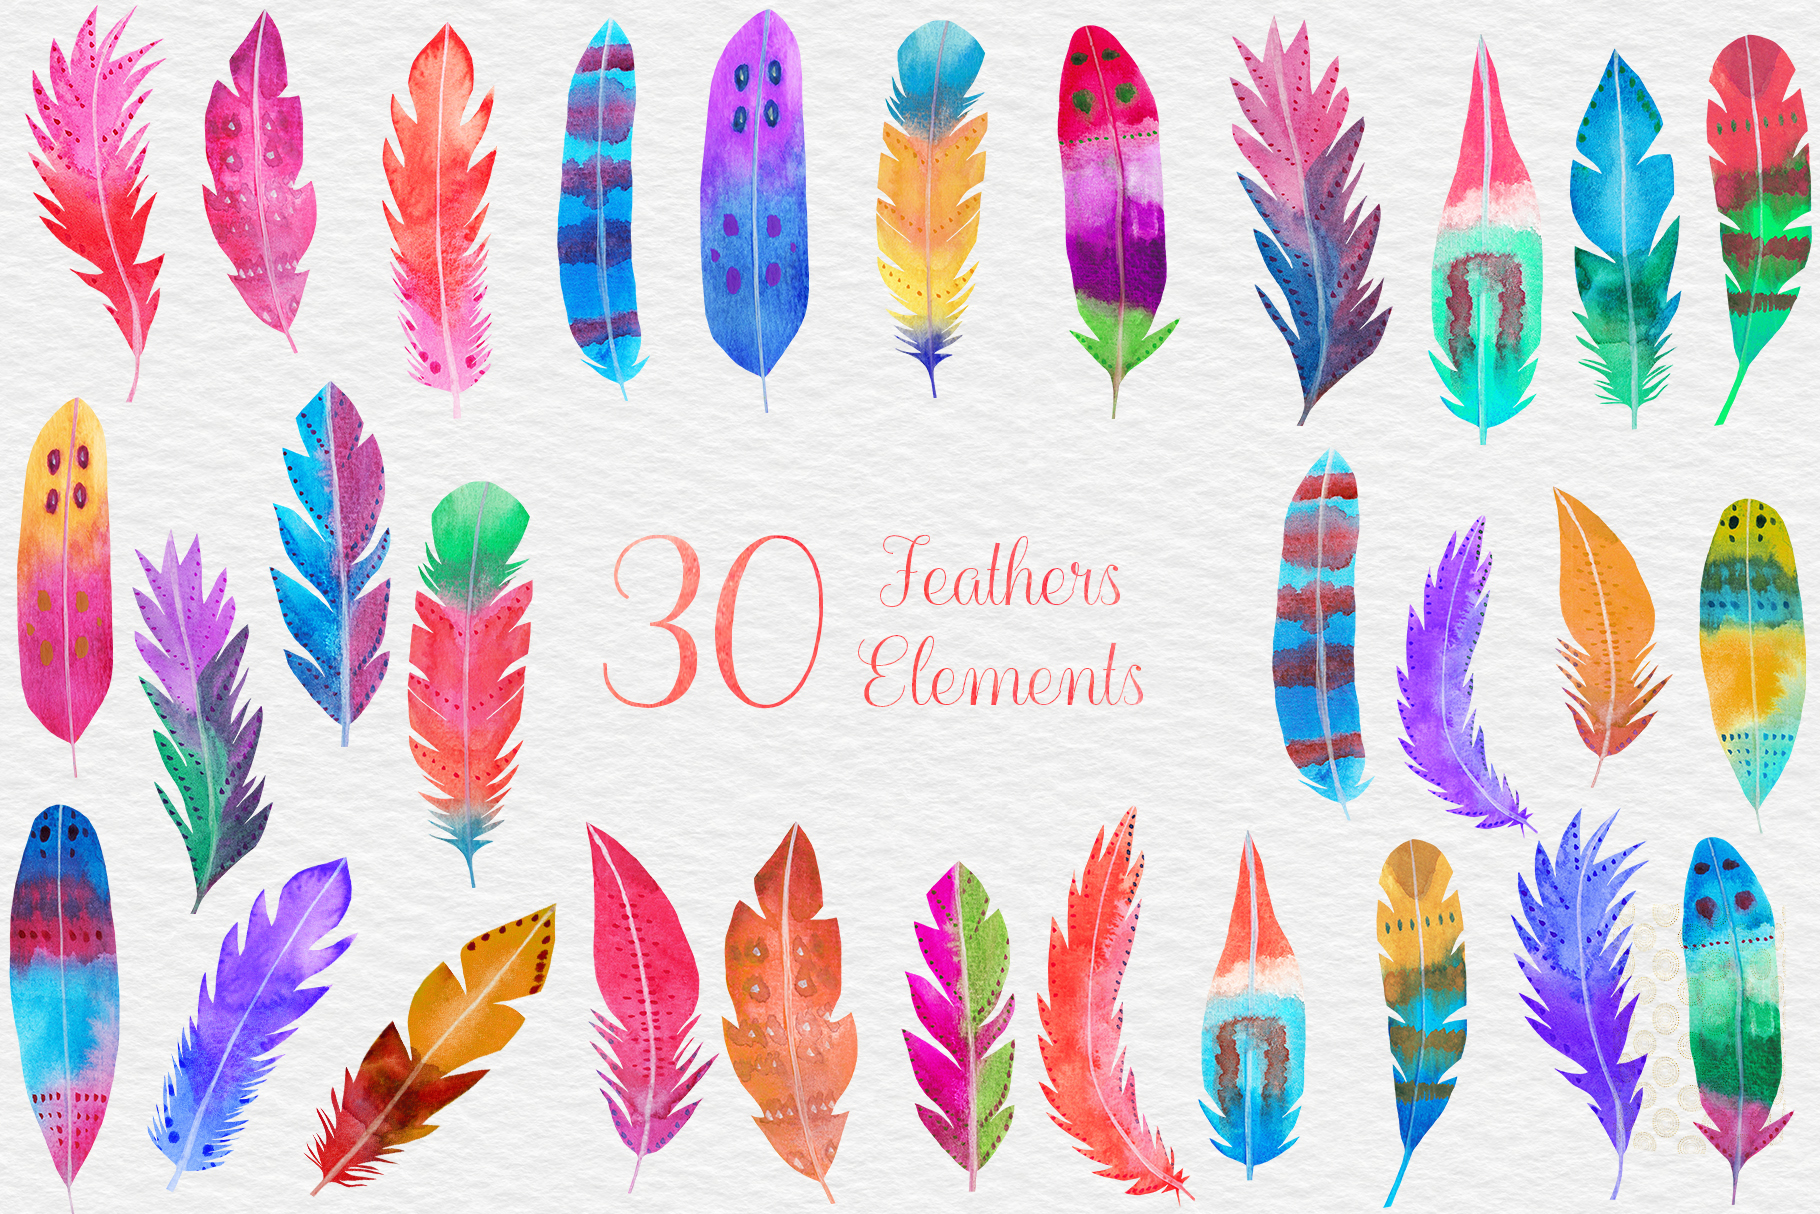 Watercolor Feathers Clipart, Watercolor Feather Illustration example image 2